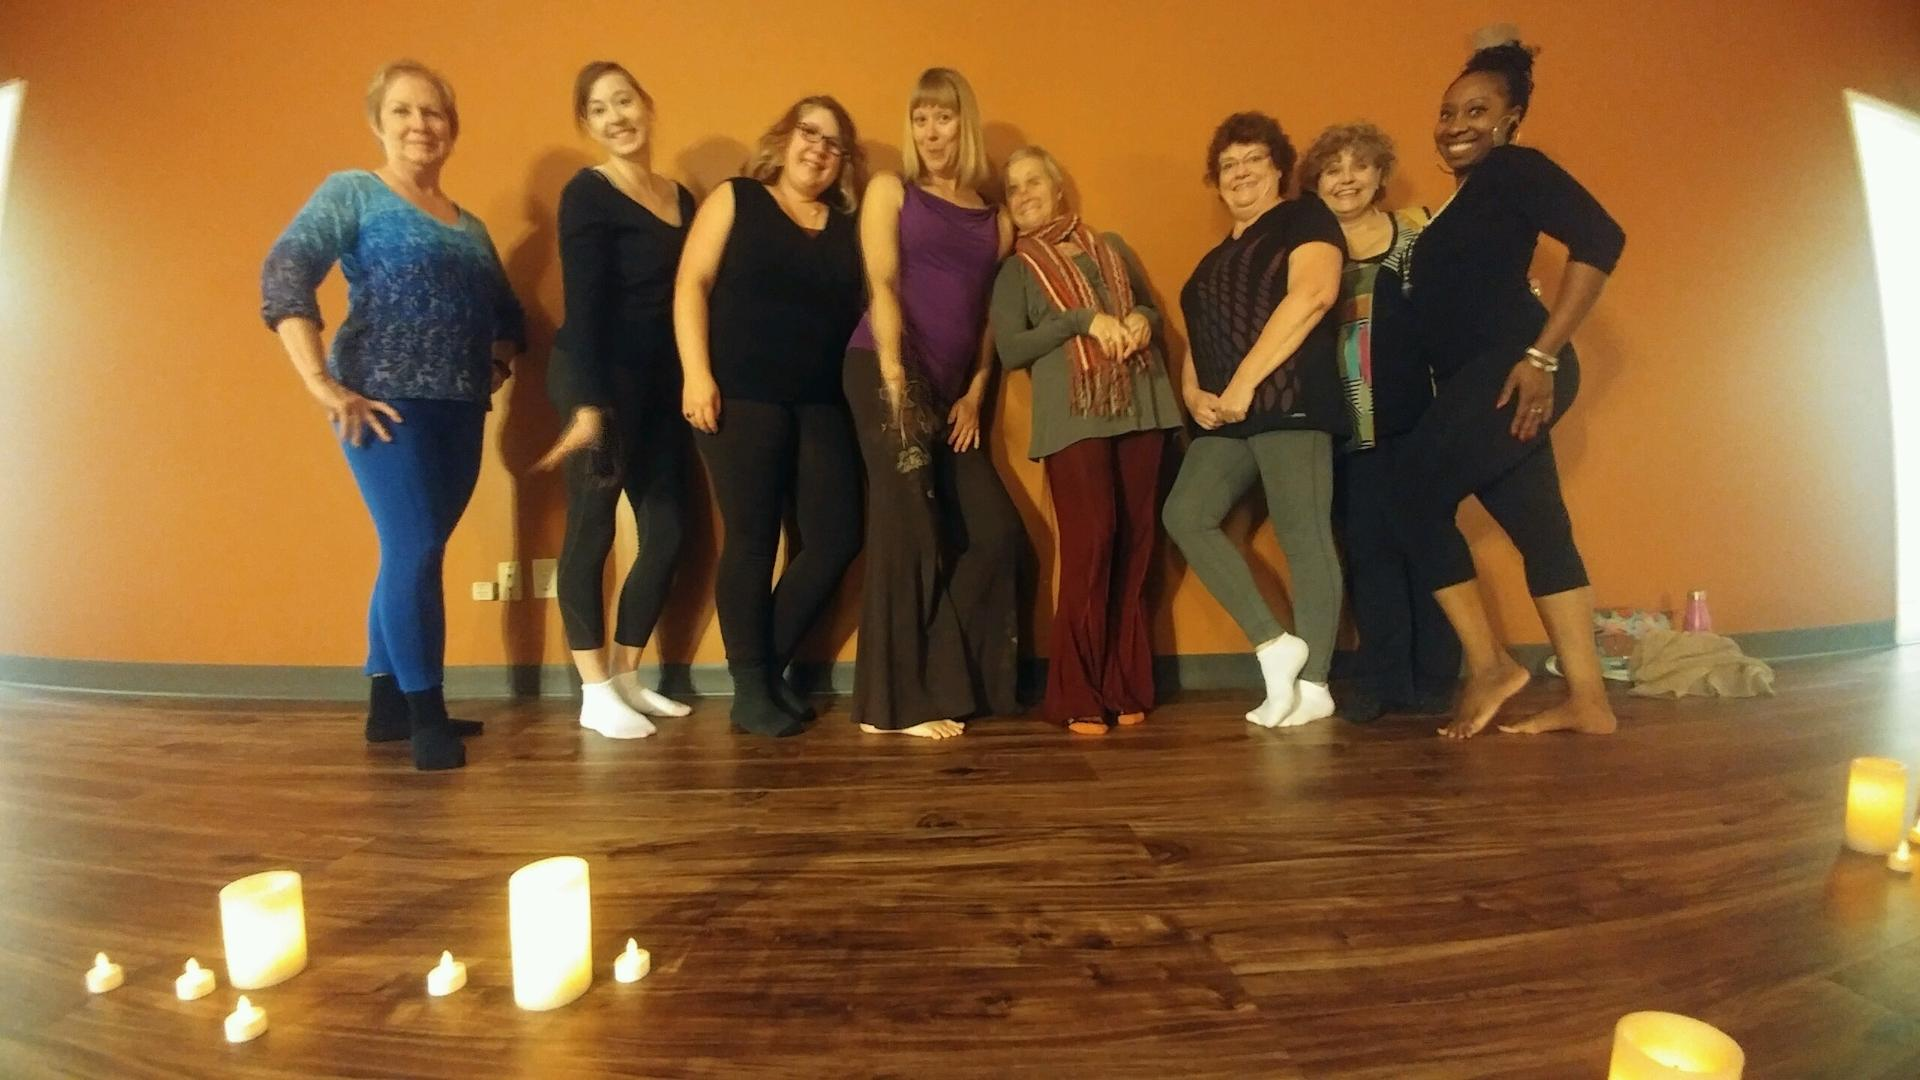 First YogiDance Workshop Fall 2016 hosted out of Above Average Yoga Studio in Edmonton, AB.